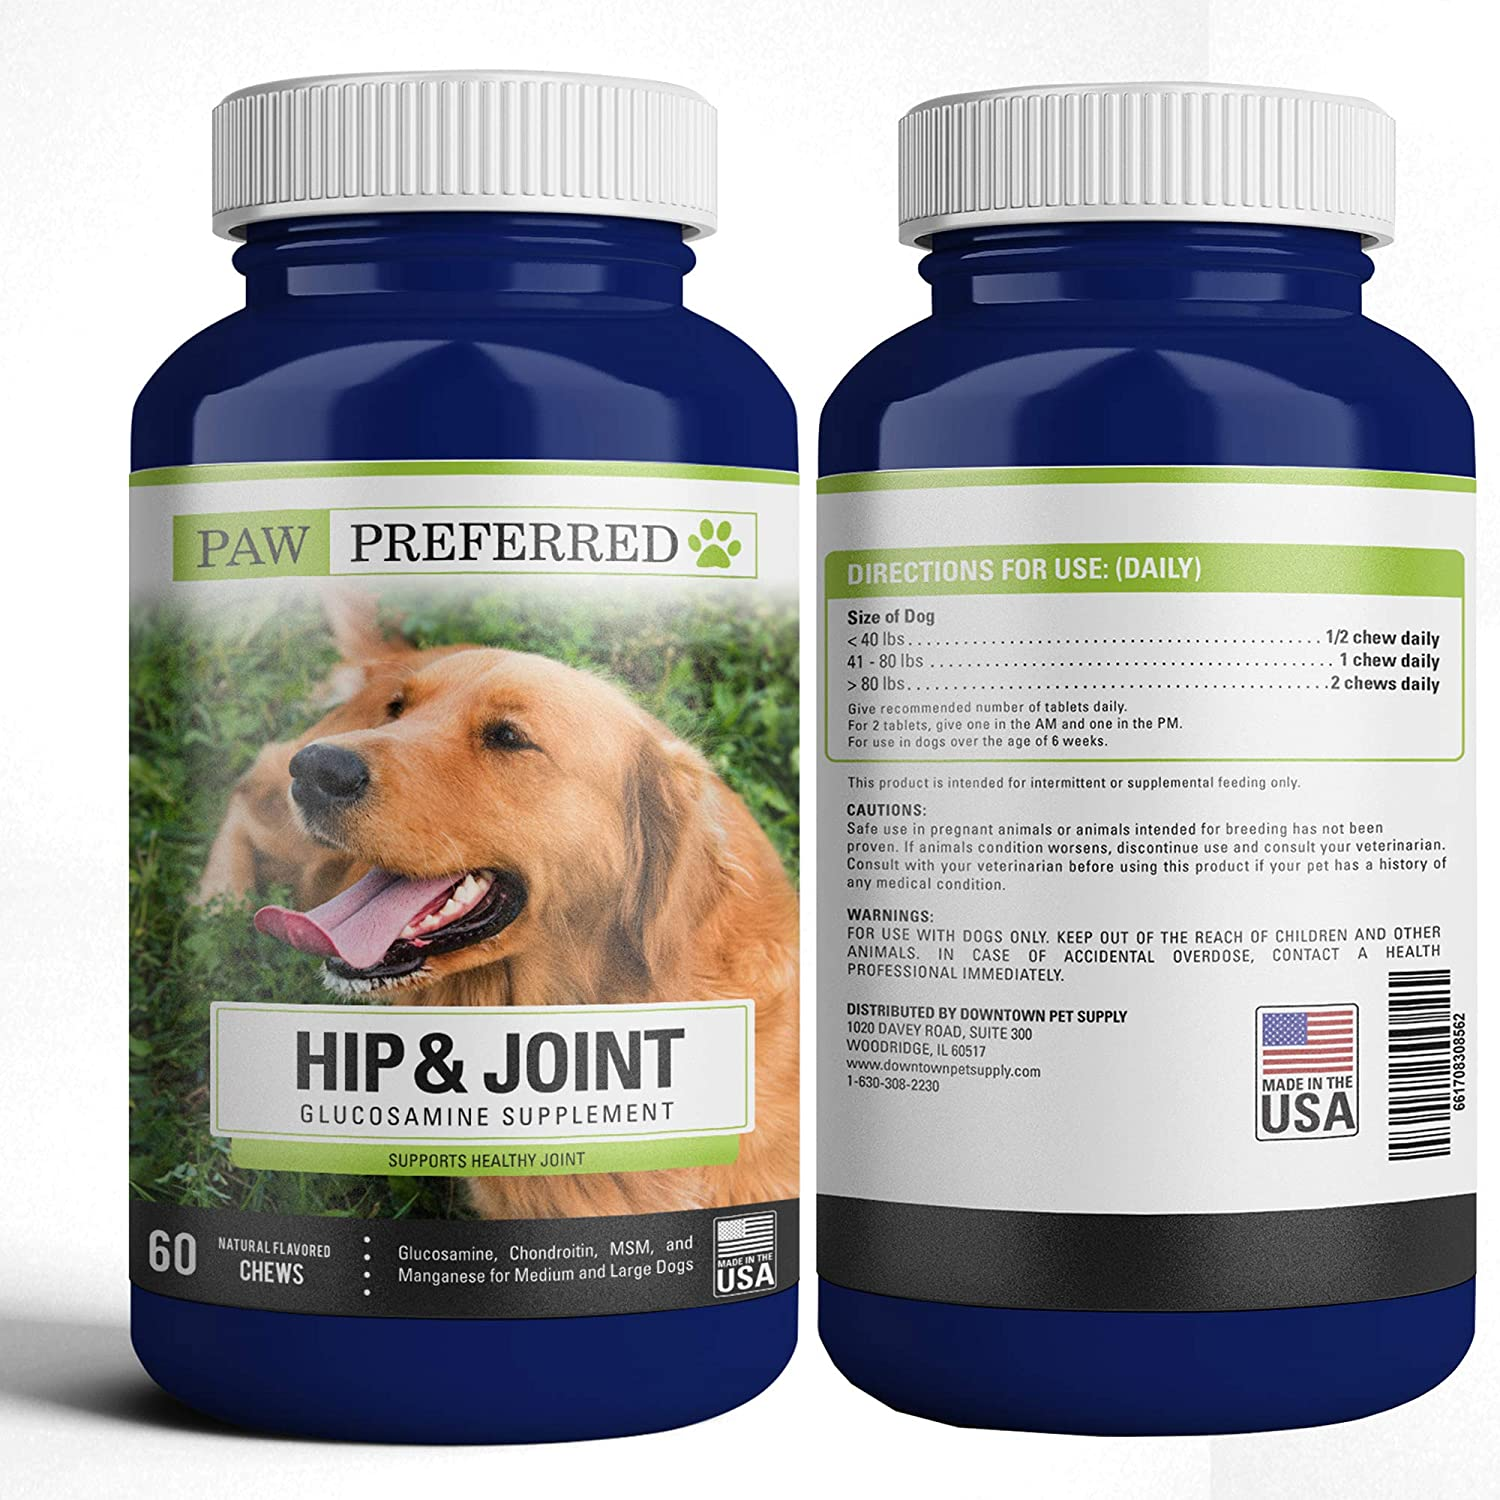 Downtown Pet Supply Premium Canine Glucosamine Chondroitin with MSM for Dogs, Great All Natural Beef Liver Chews Supplement for Hip and Joints, Safe and Made in USA (60 or 120 Count)